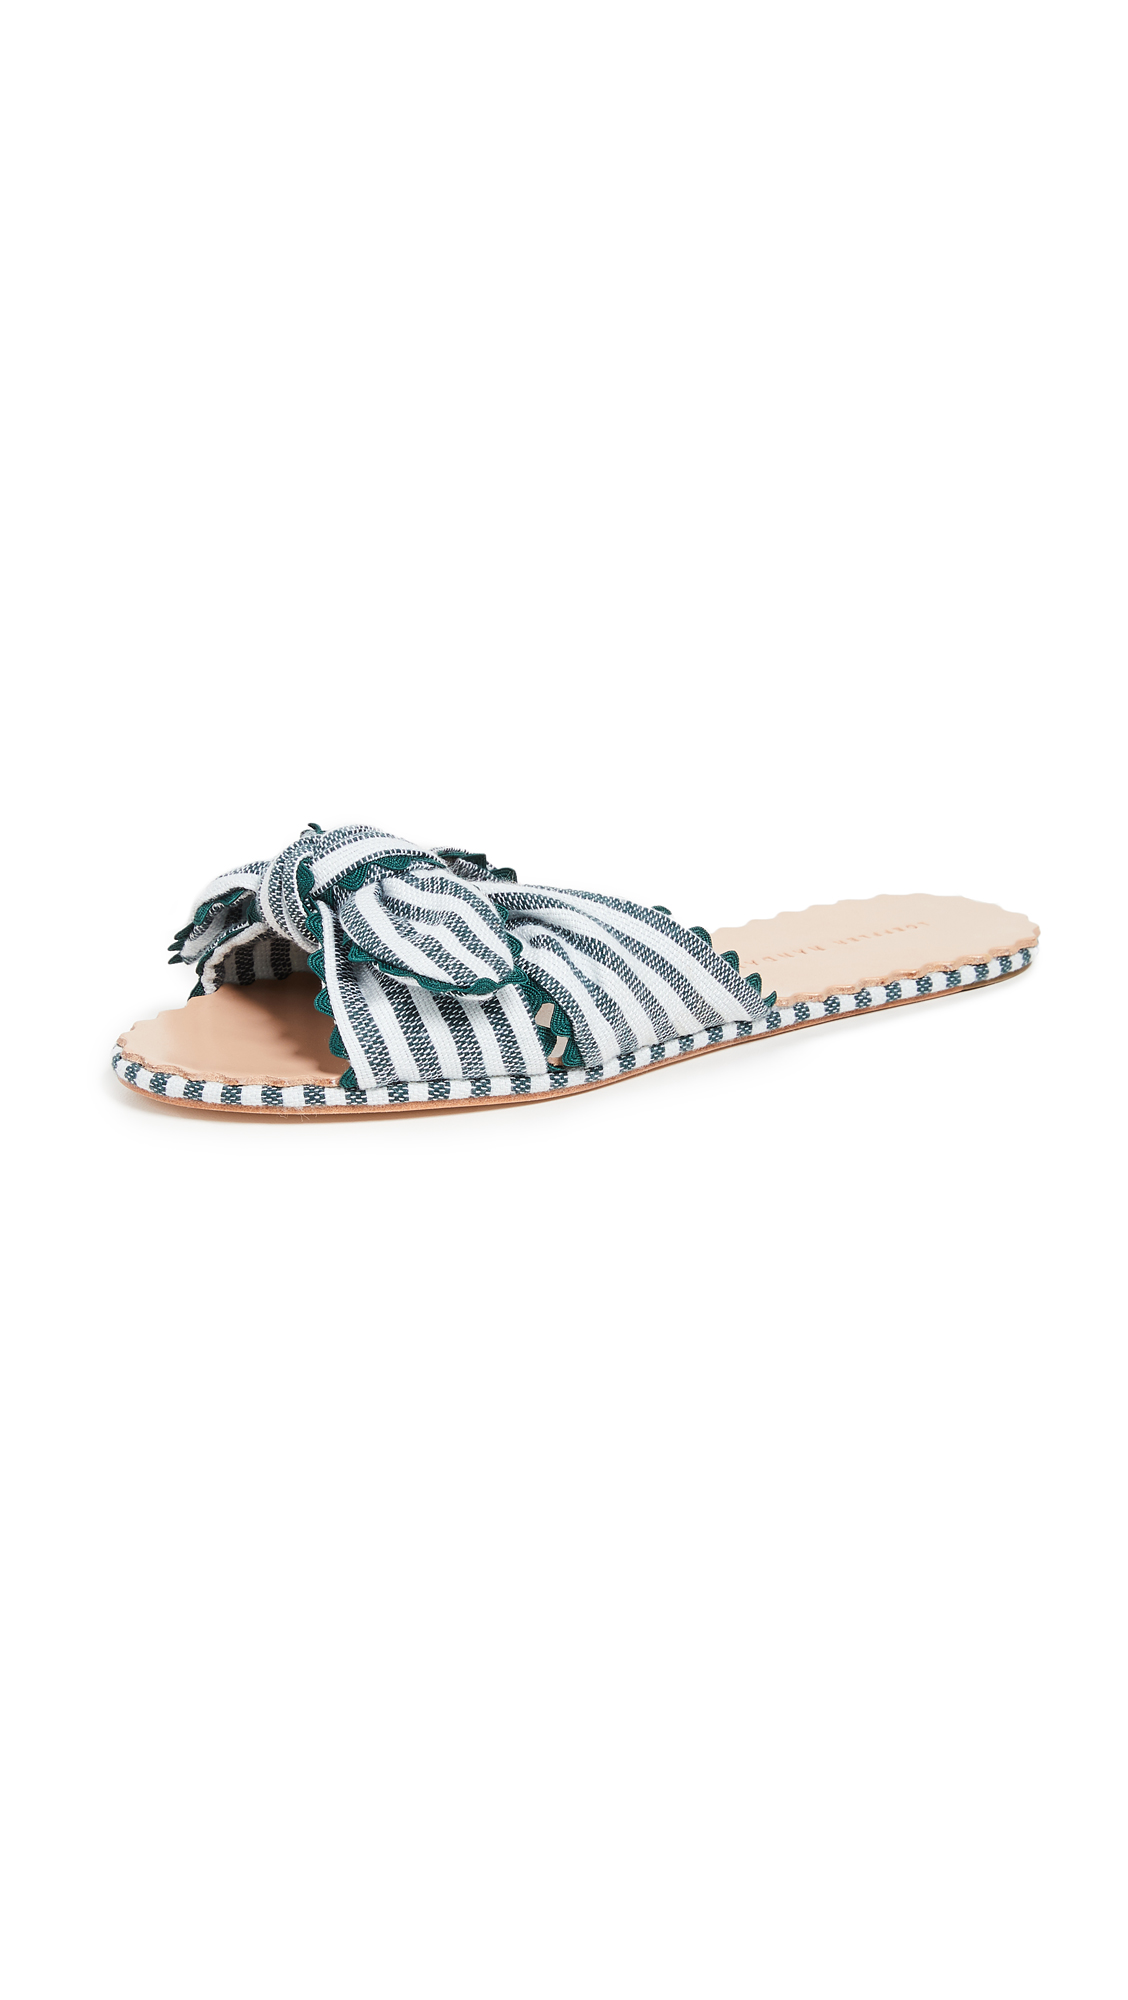 Loeffler Randall Shirley Knotted Rickrack Slides - Forest/Light Blue